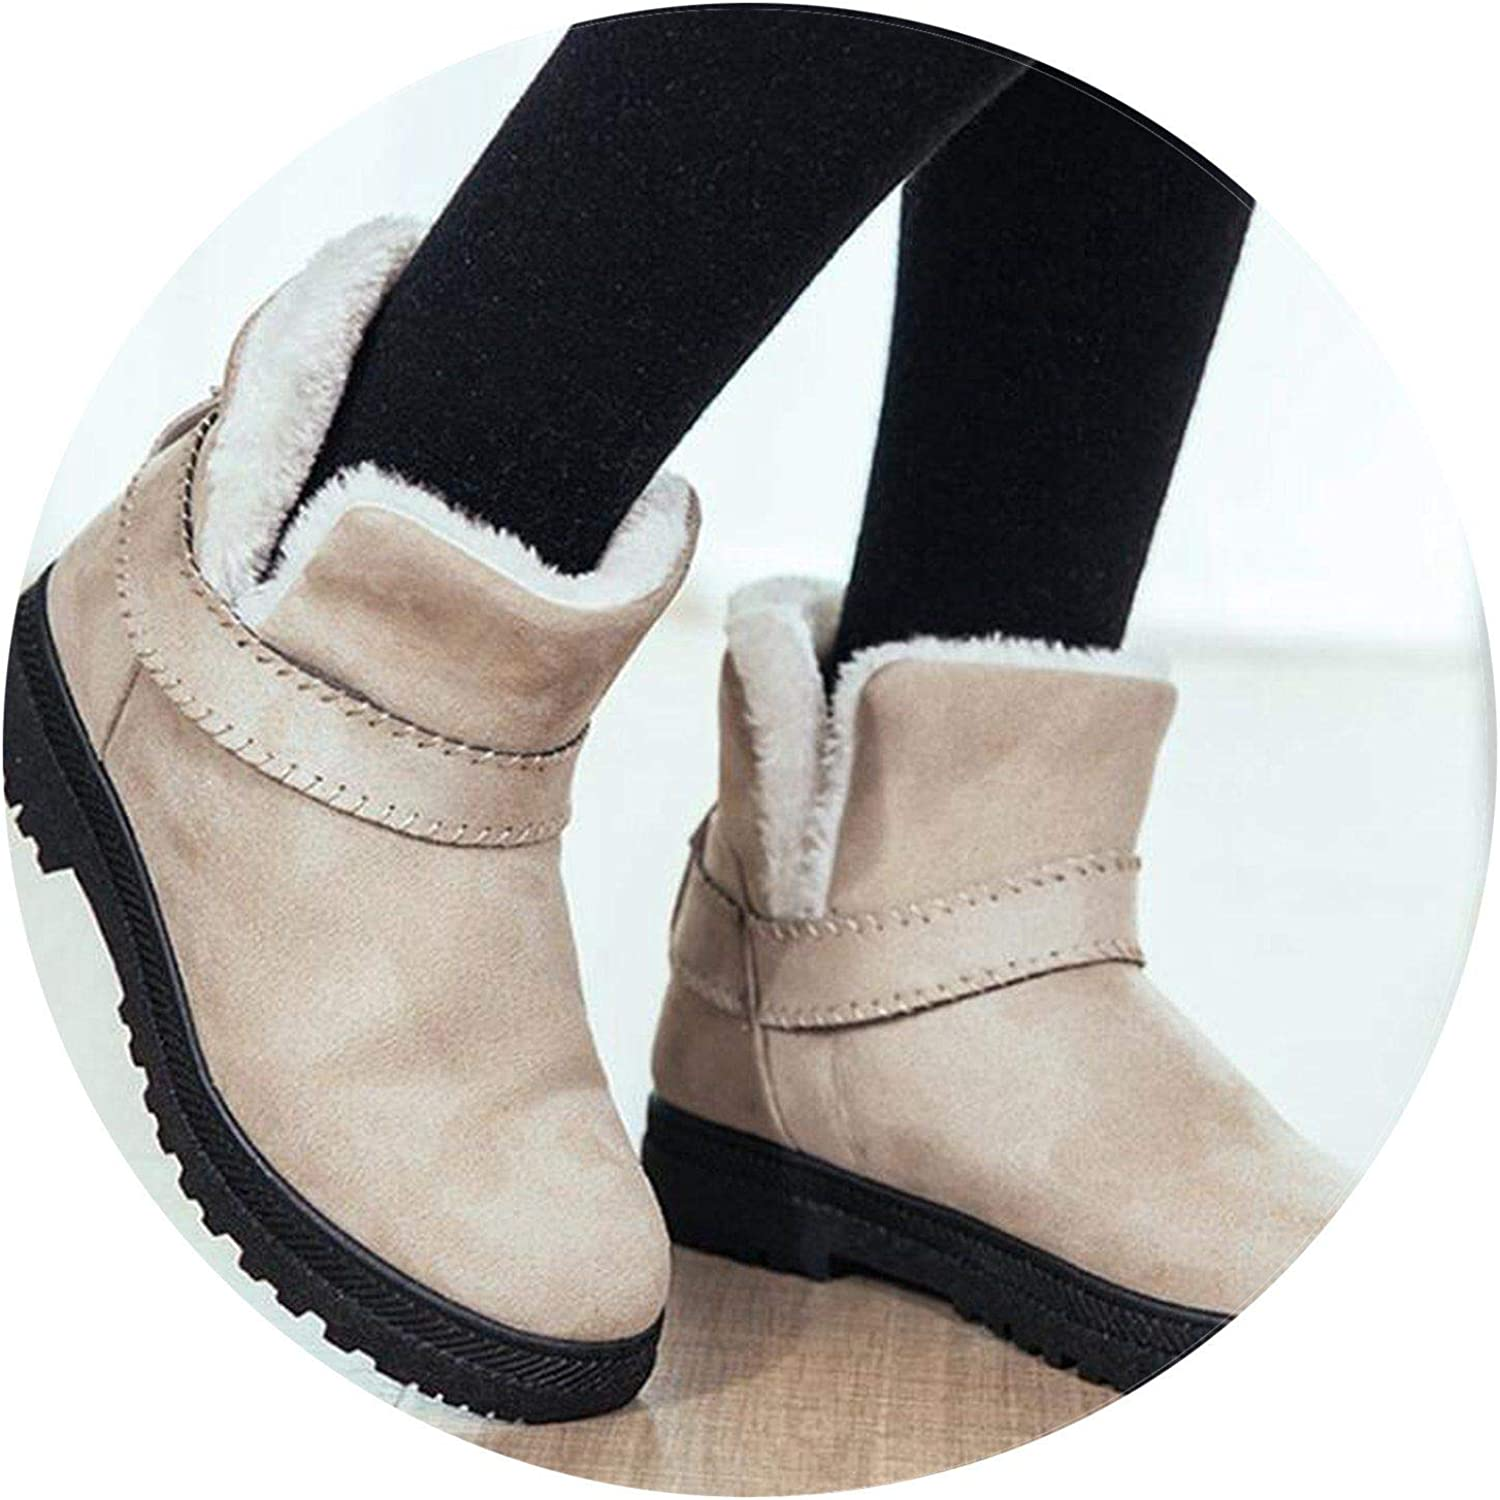 Summer-lavender Big Warm Snow Boots Winter Boots Women Ankle Boots Warm Cotton Boots Plush Insole